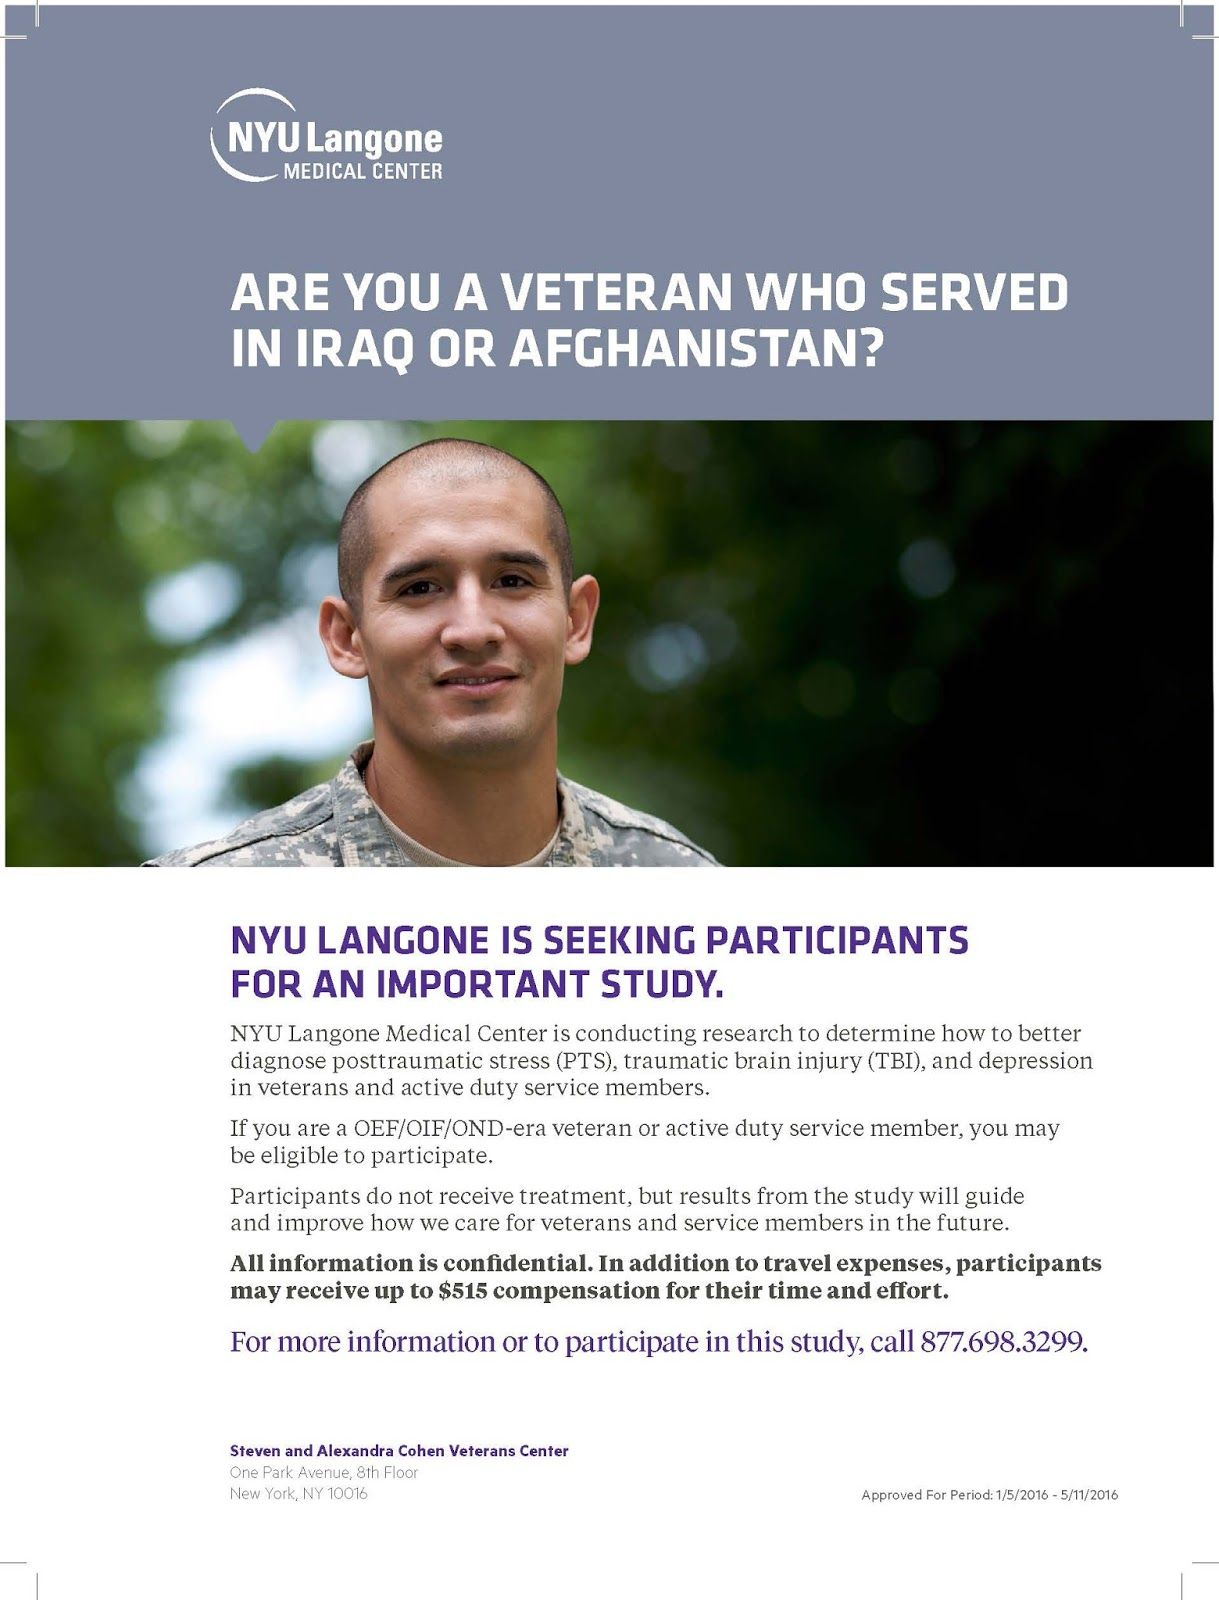 Nyu Langone Free Military Family Clinic Information Research For Post 9 11 Veterans Compensation Up To 515 Http Veteran Military Family Support Our Troops